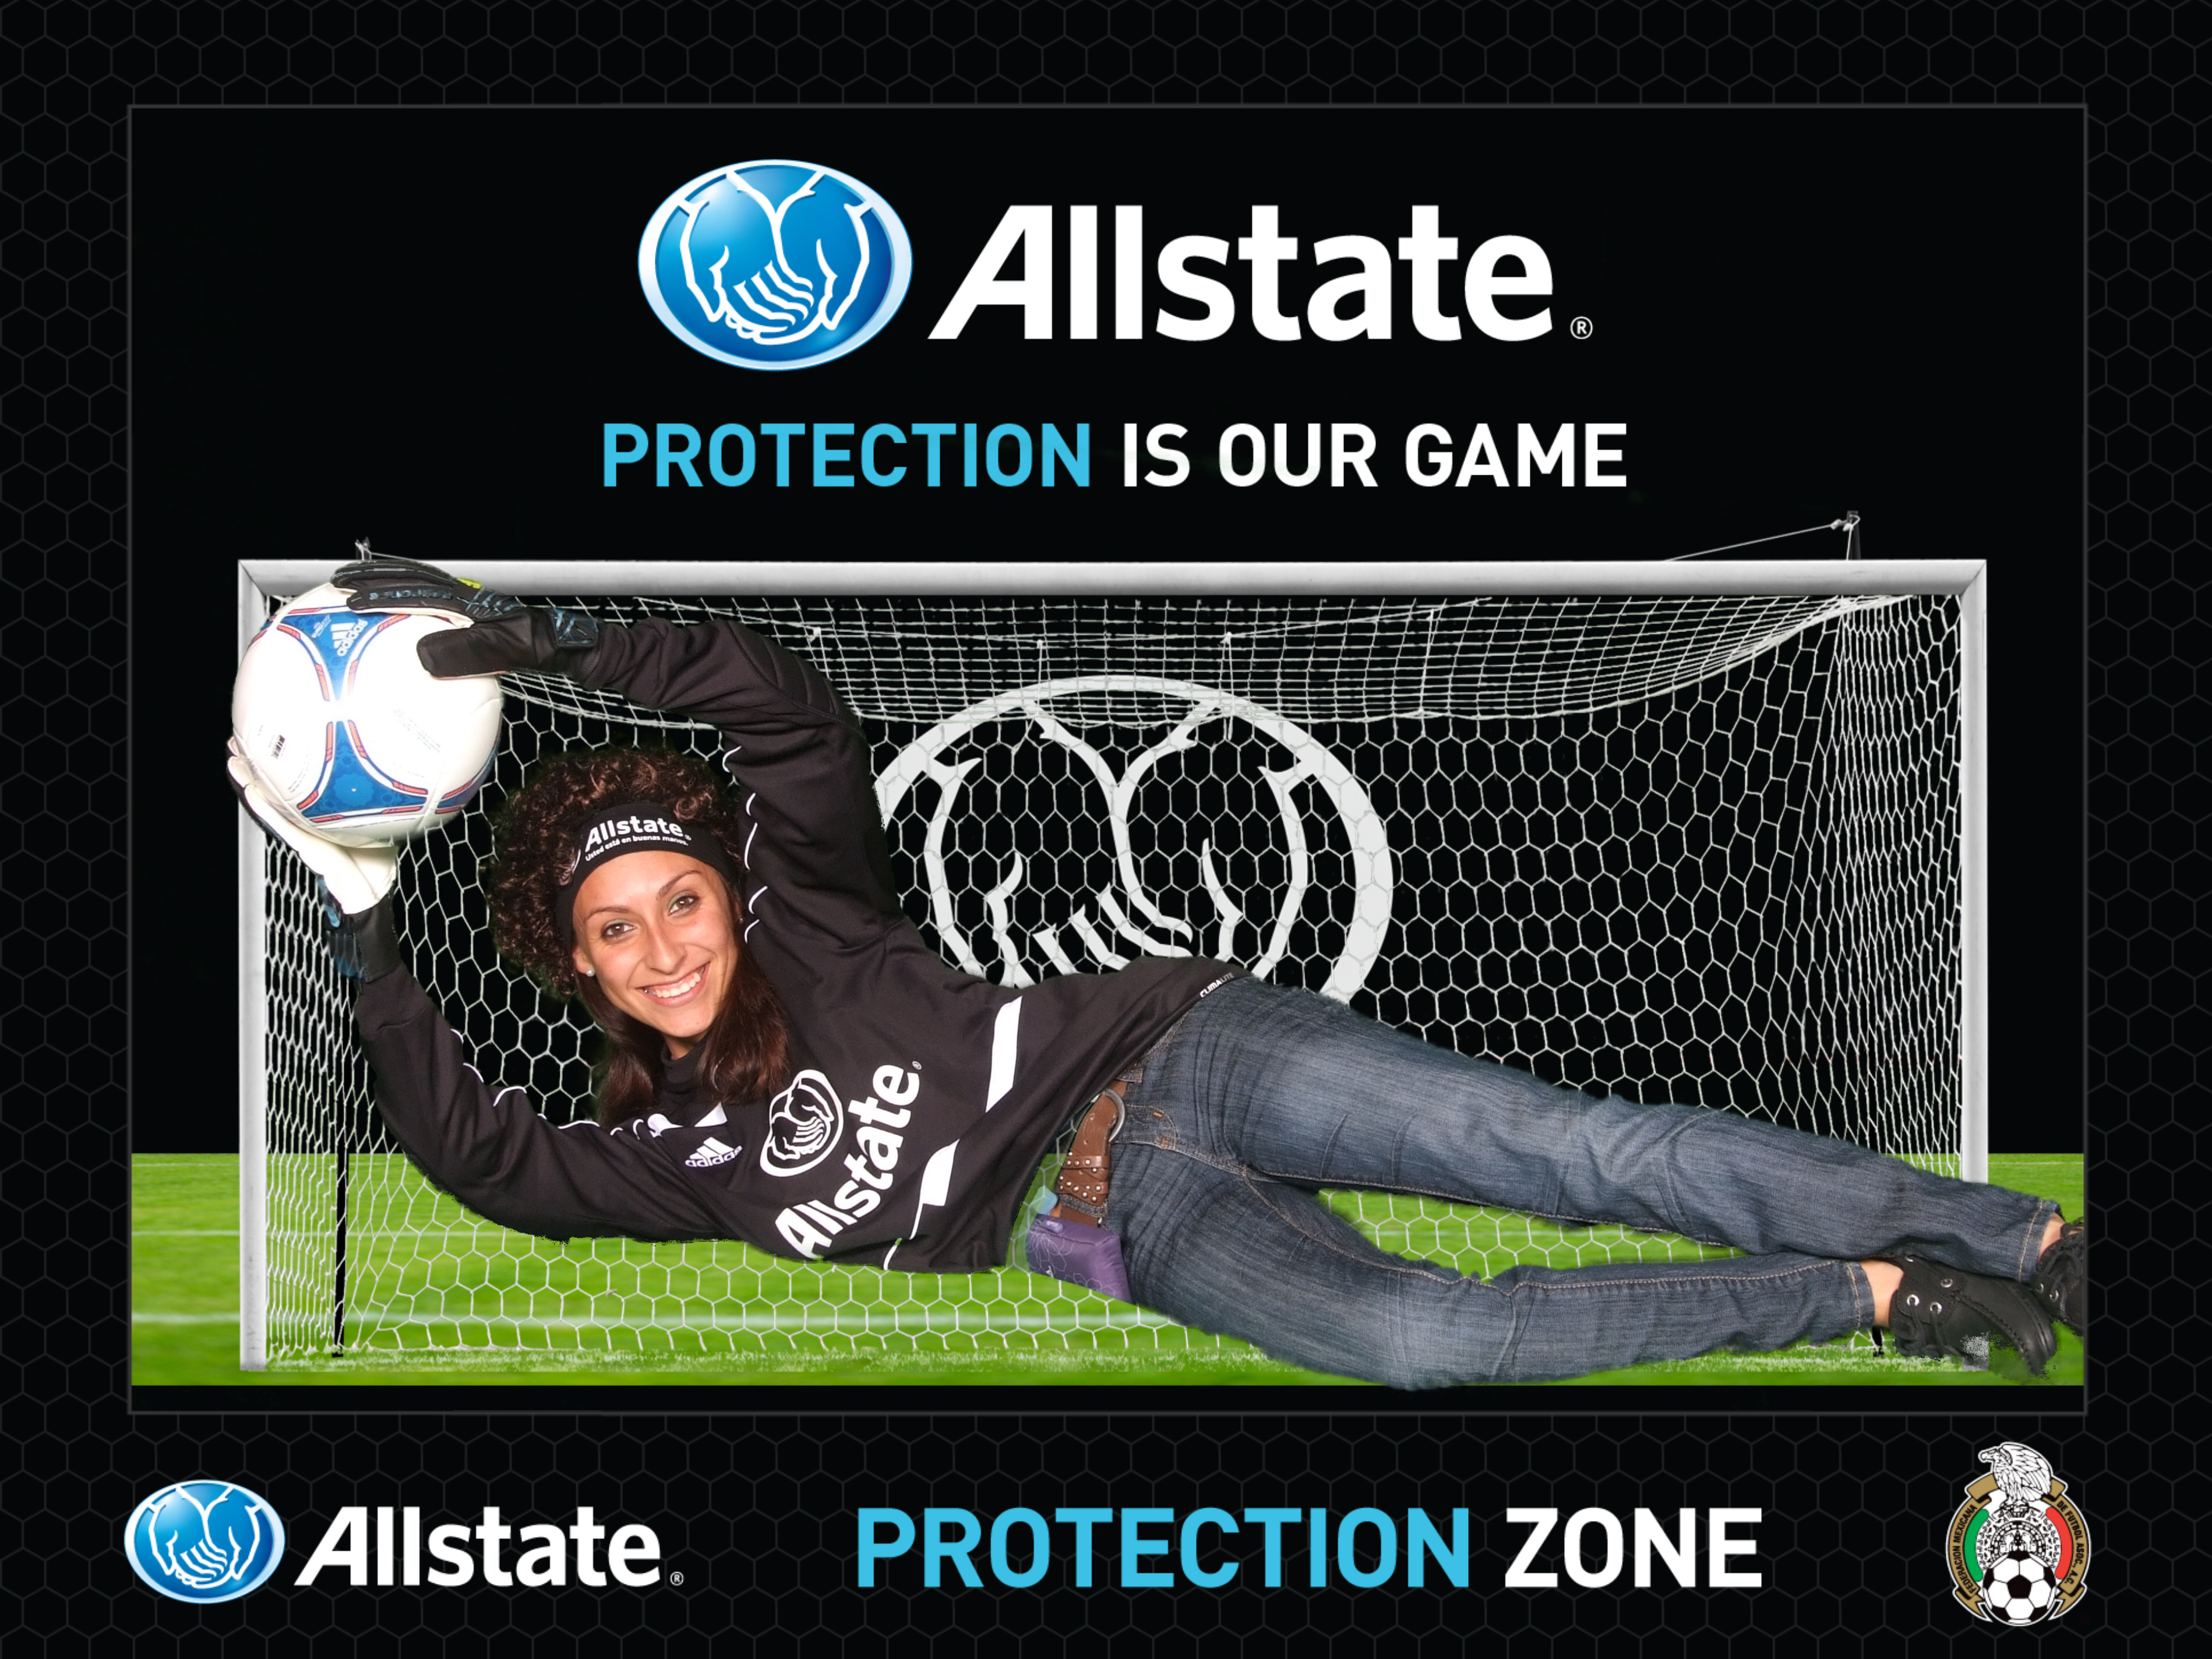 Allstate Fan Photo